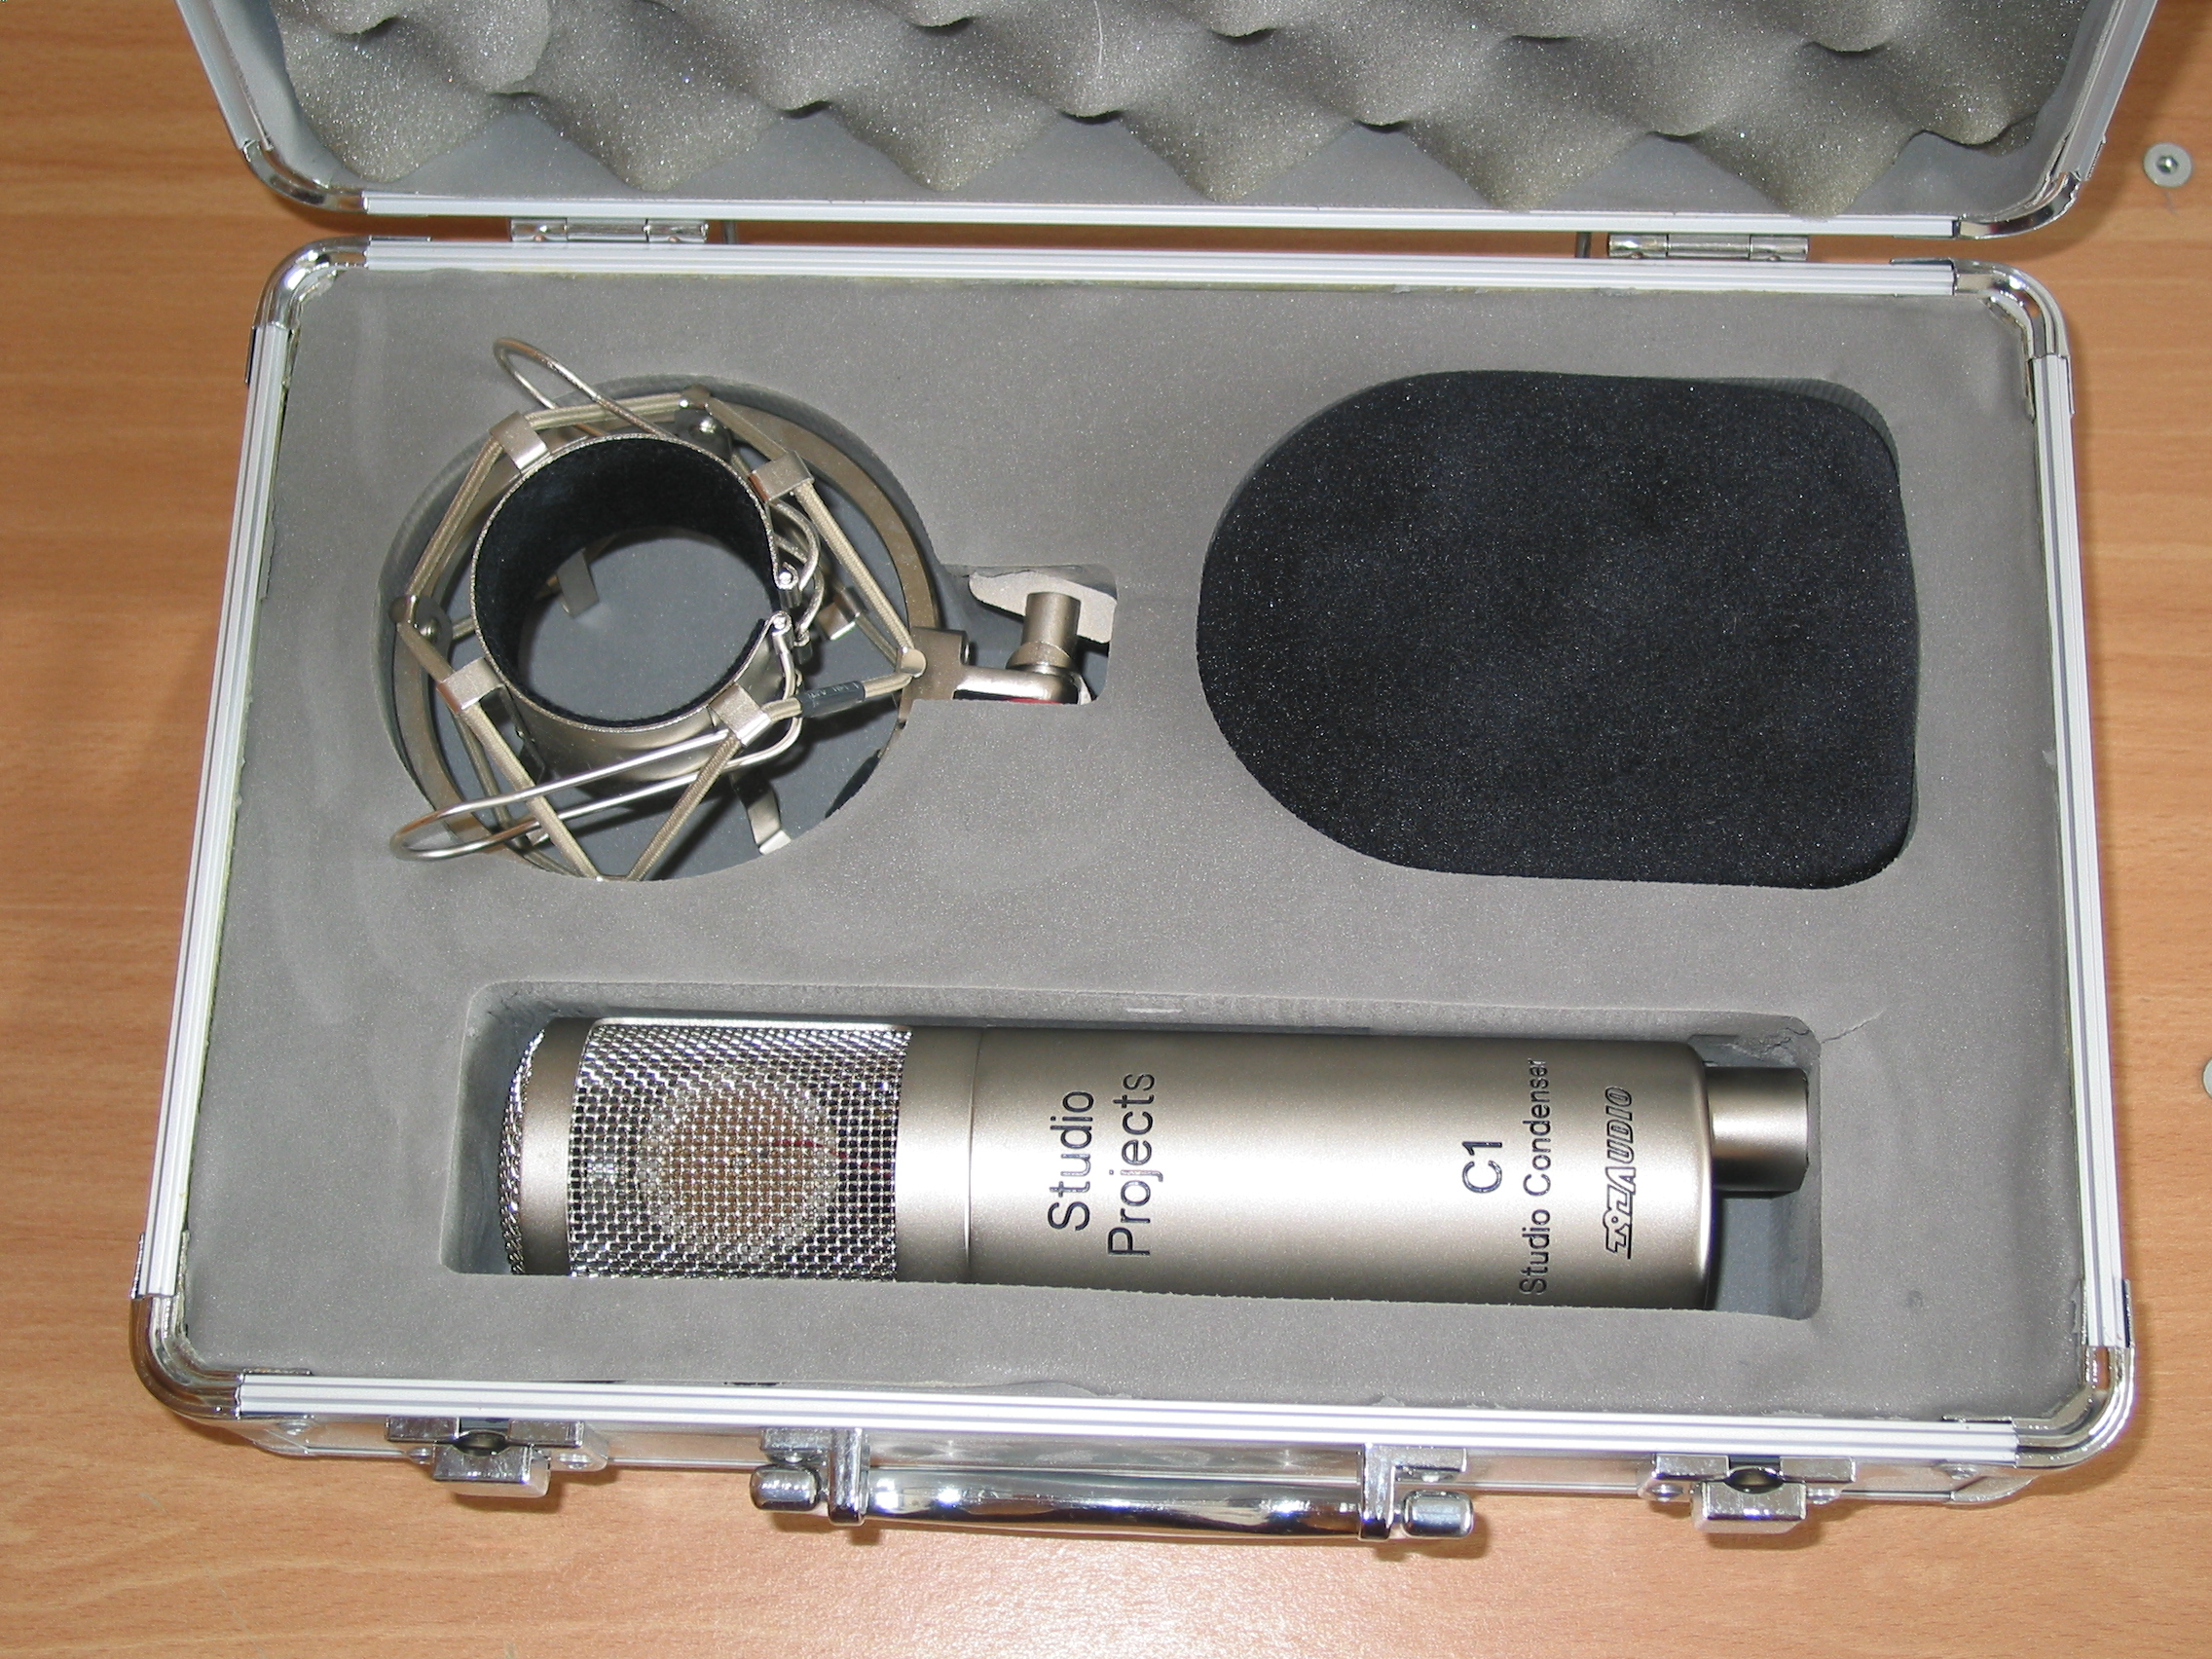 studio projects c1 The studio projects c1 is a condenser microphone made for use in the recording studio it has a cardioid polar pattern and it also has an xlr microphone cable output.